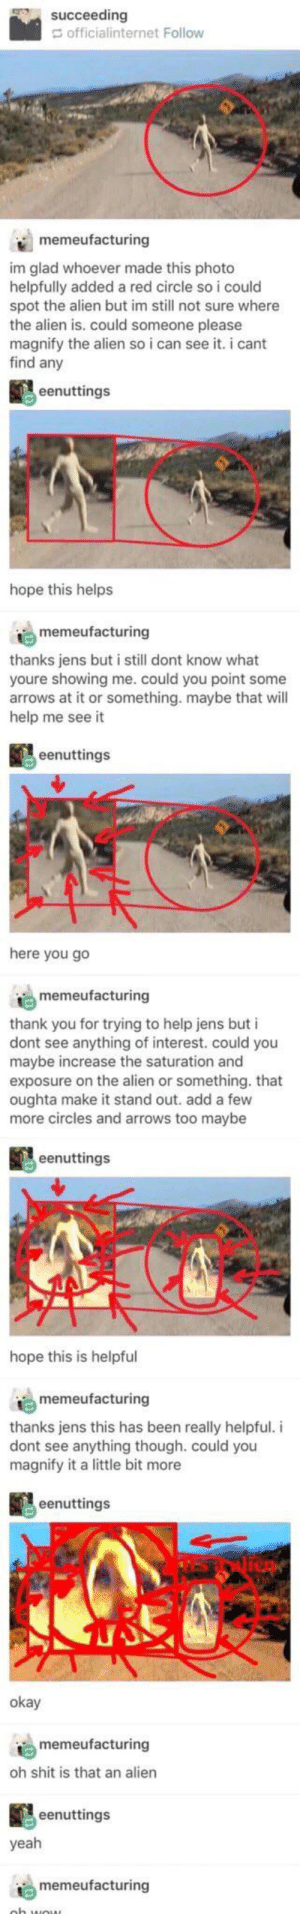 Shit, Yeah, and Thank You: succeeding  officialinternet Follow  memeufacturing  im glad whoever made this photo  helpfully added a red circle soi could  spot the alien but im still not sure where  the alien is. could someone please  magnify the alien so i can see it. i cant  find any  eenuttings  hope this helps  memeufacturing  thanks jens but i still dont know what  youre showing me. could you point some  arrows at it or something. maybe that will  help me see it  eenuttings  here you go  memeufacturing  thank you for trying to help jens but i  dont see anything of interest. could you  maybe increase the saturation and  exposure on the alien or something. that  oughta make it stand out. add a few  more circles and arrows too maybe  eenuttings  hope this is helpful  memeufacturing  thanks jens this has been really helpful. i  dont see anything though. could you  magnify it a little bit more  eenuttings  okay  memeufacturing  oh shit is that an alien  eenuttings  yeah  memeufacturing We got to be able to identify an alien if we're going to raid Area 51